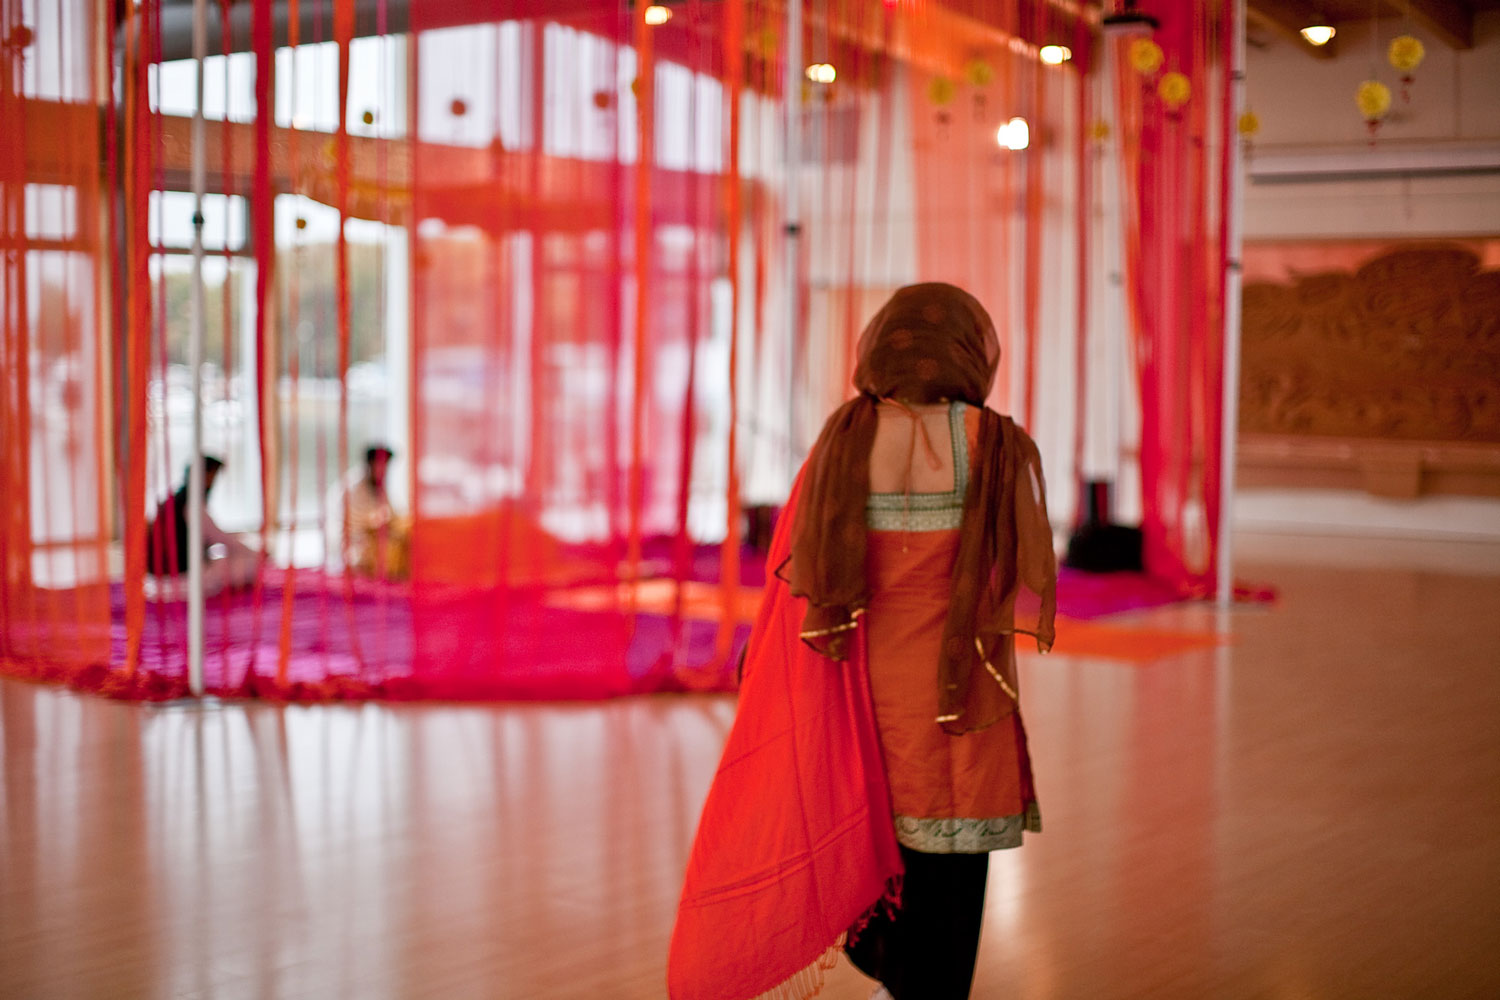 UBC Boathouse Sikh Wedding - indian wedding decor - decorations - outdoor sikh wedding